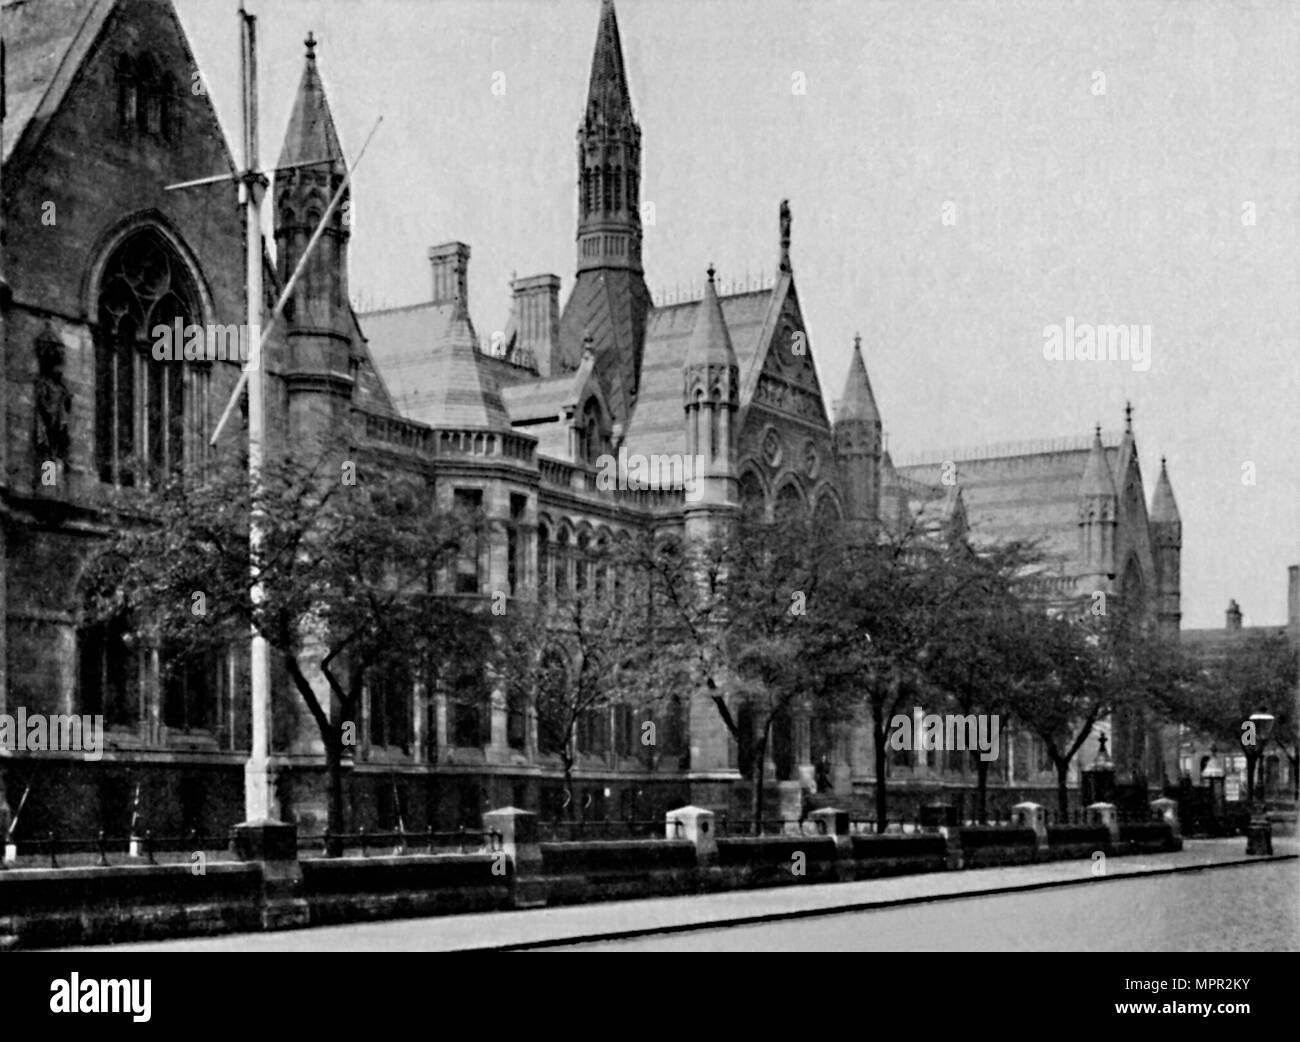 'University College, Nottingham', 1904. Artist: Unknown. - Stock Image